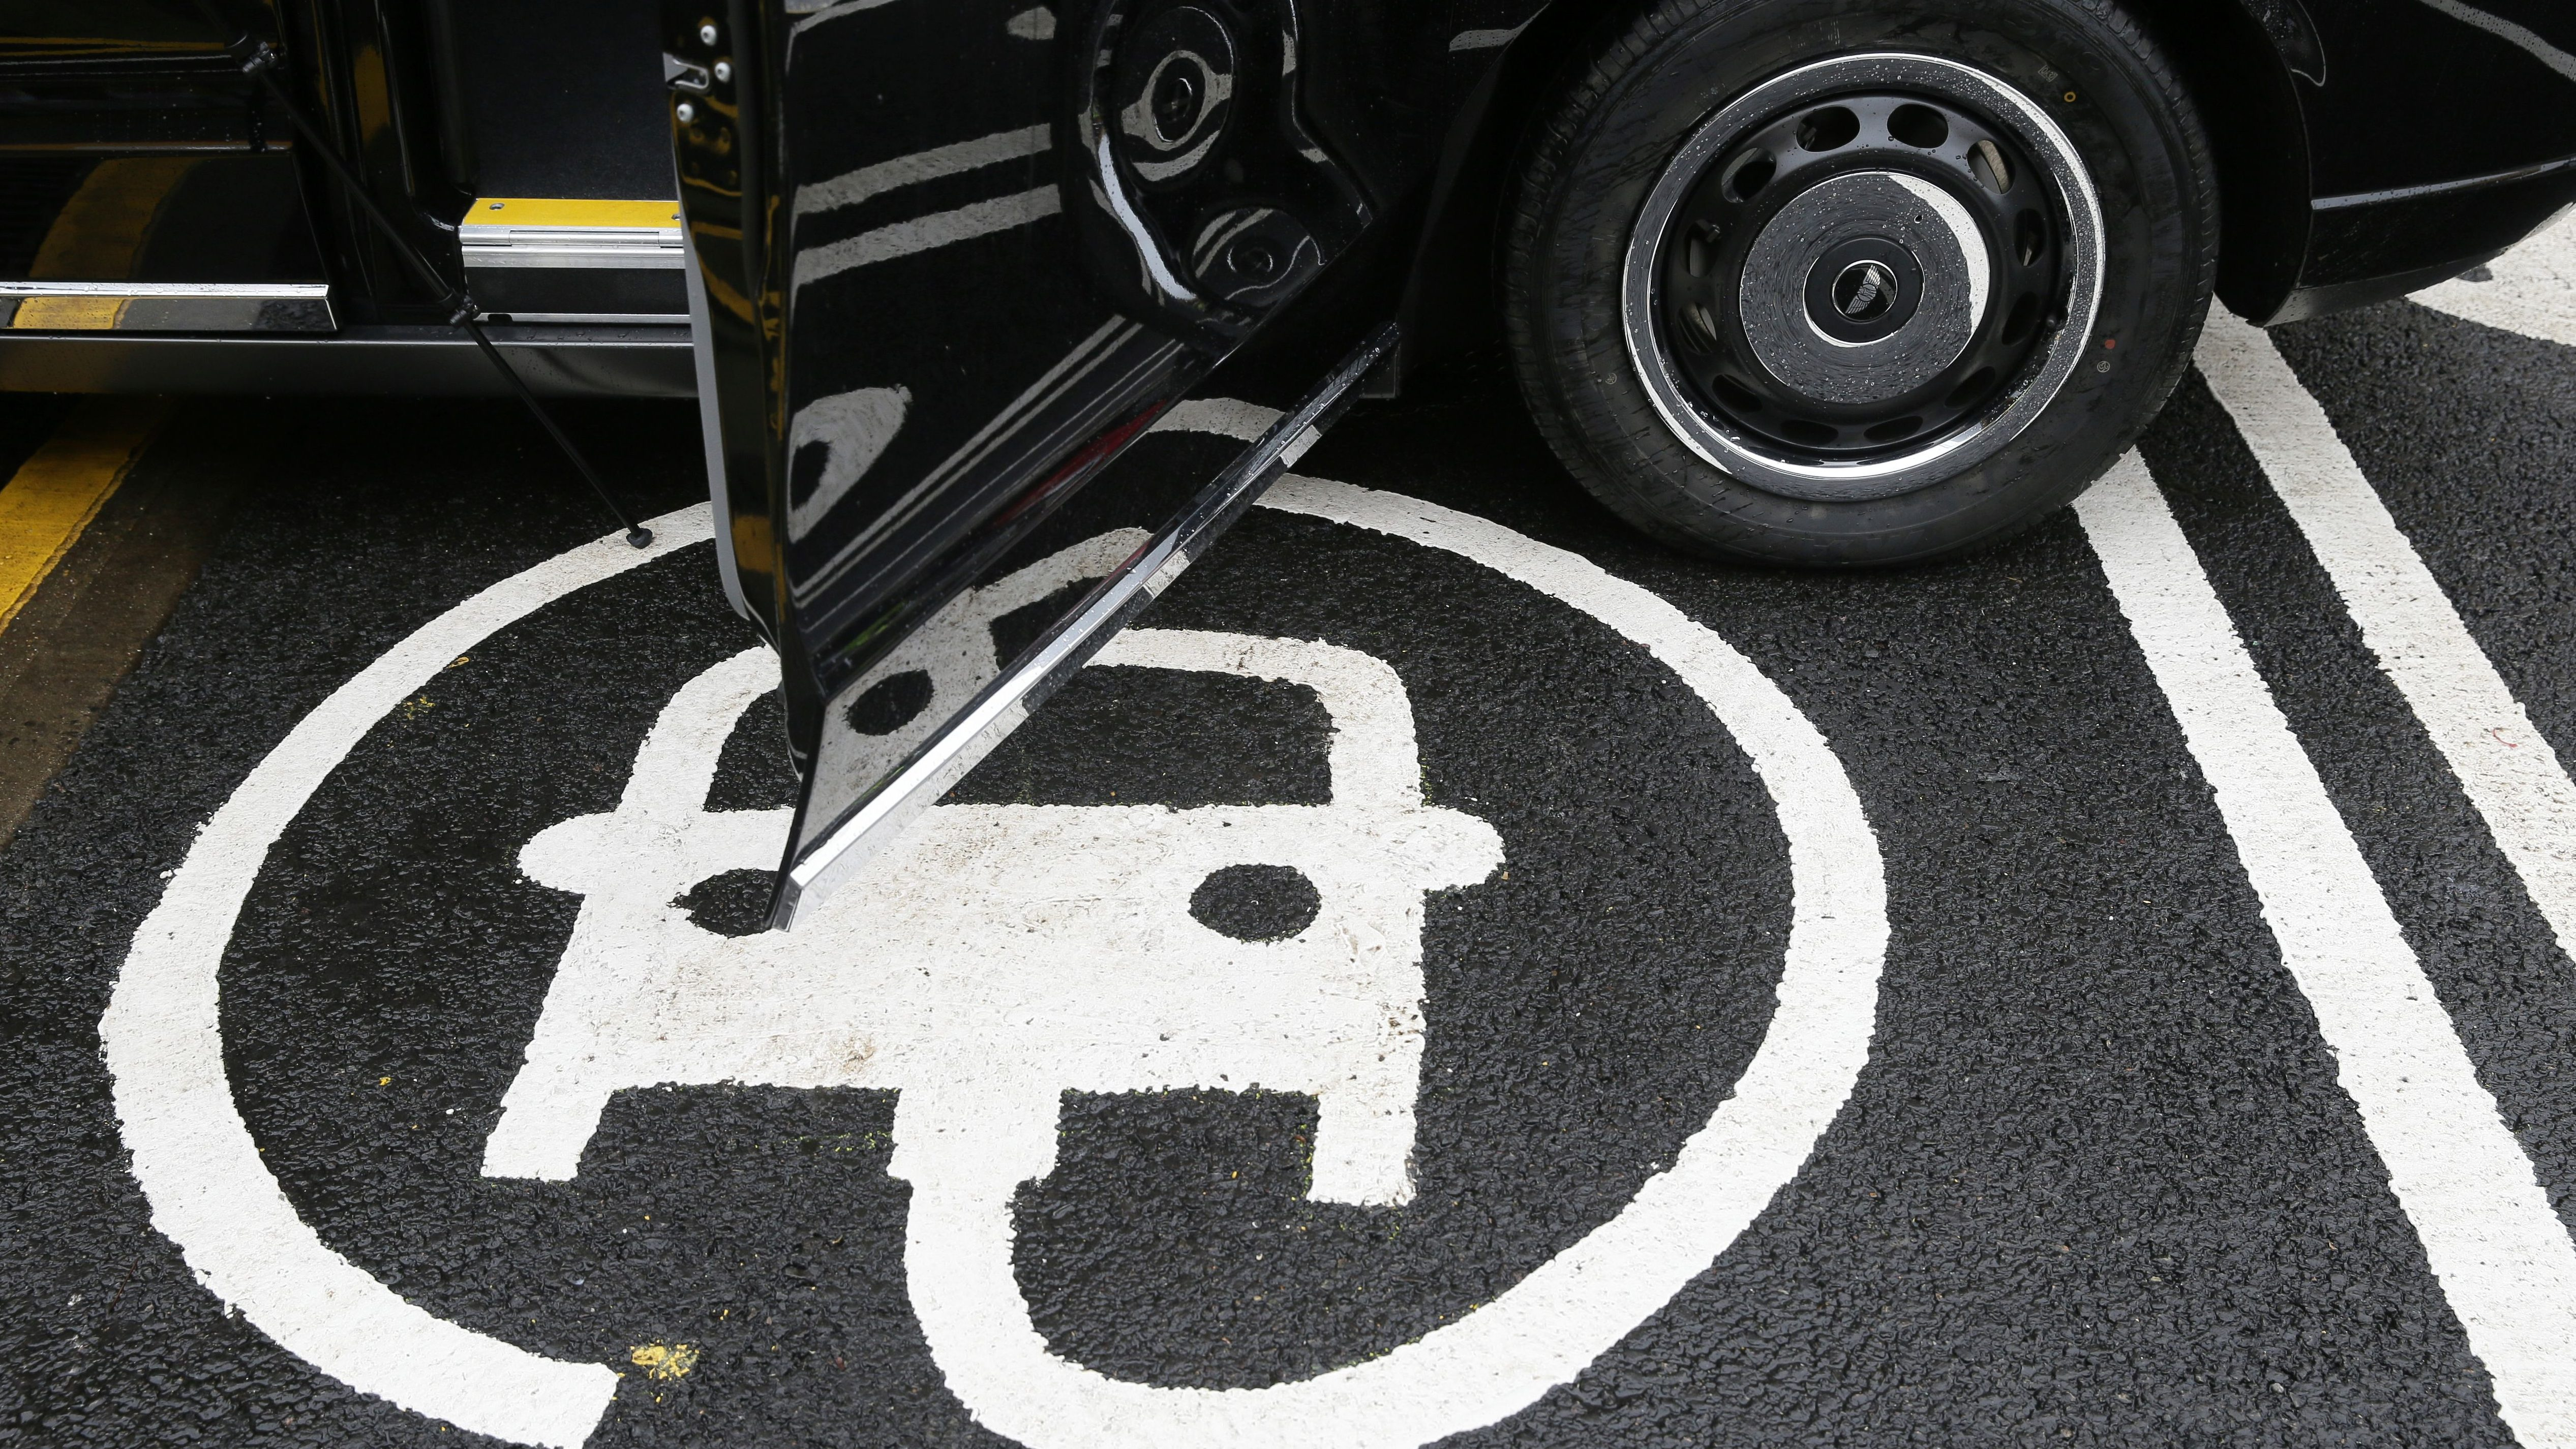 The electric car recharging sign, as a new TX Cab London taxi is parked at a charging station during a media opportunity at a Shell petrol station on Holloway road, in London, Wednesday Oct. 18, 2017, 2017. Only days after Shell agreed to buy electric vehicle charging firm NewMotion, Shell are opening three charging stations Wednesday with more expected by the end of the year.  (AP Photo/Tim Ireland)